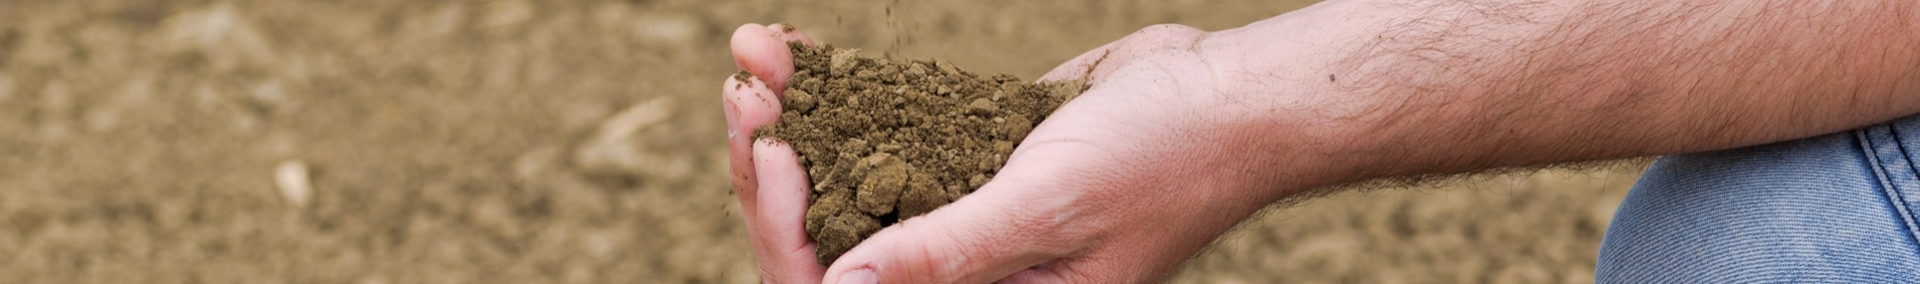 Image of retailer testing soil quality